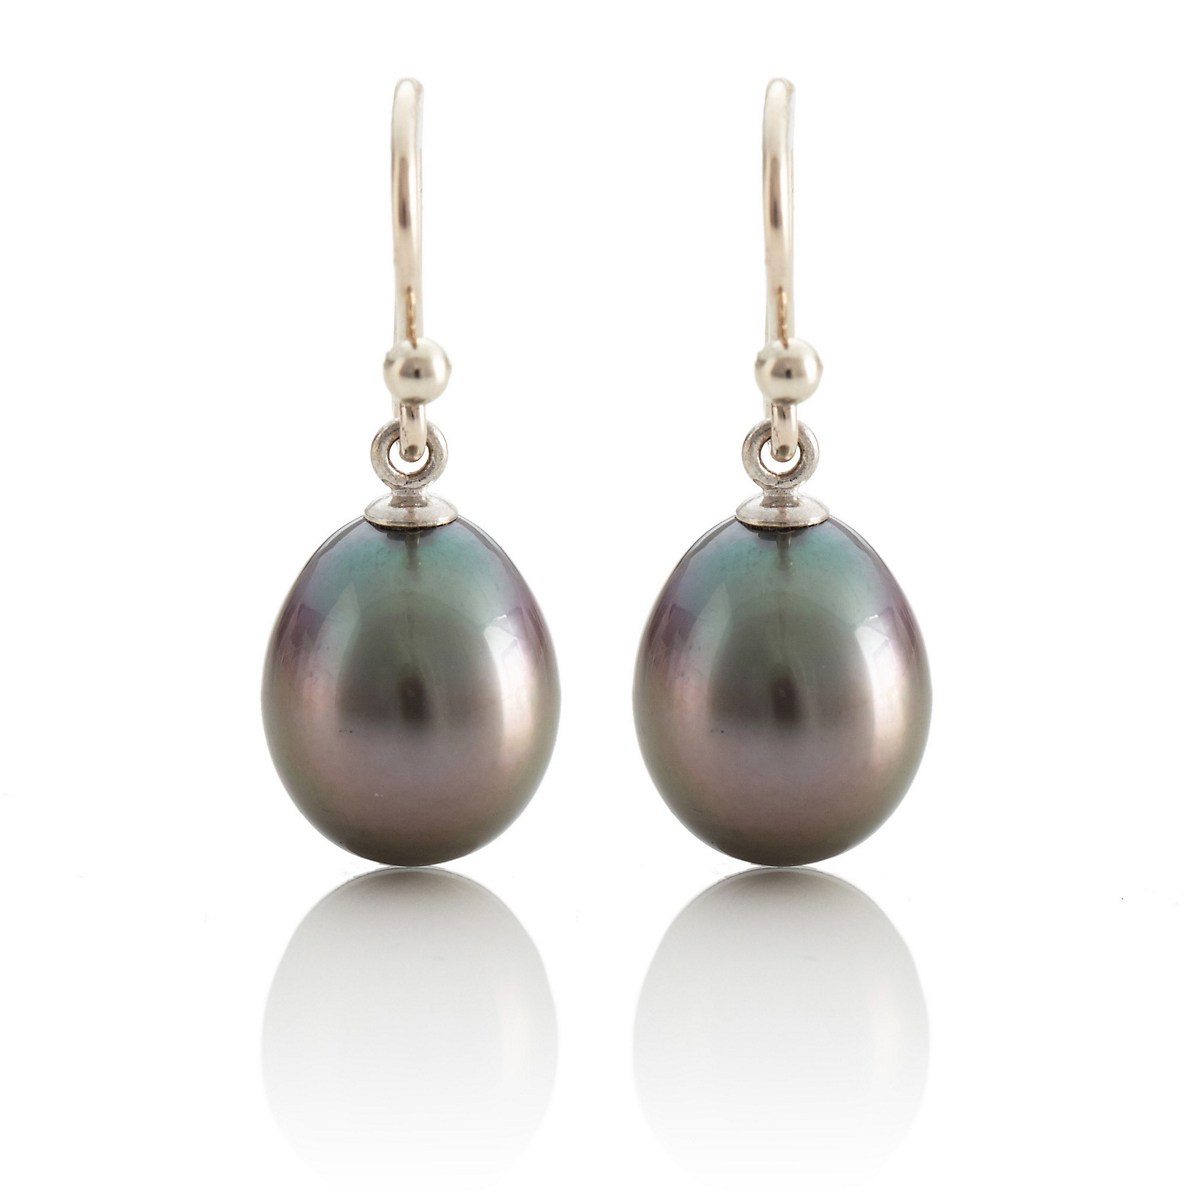 Gump's Tahitian Cultured Pearl Drop Earrings